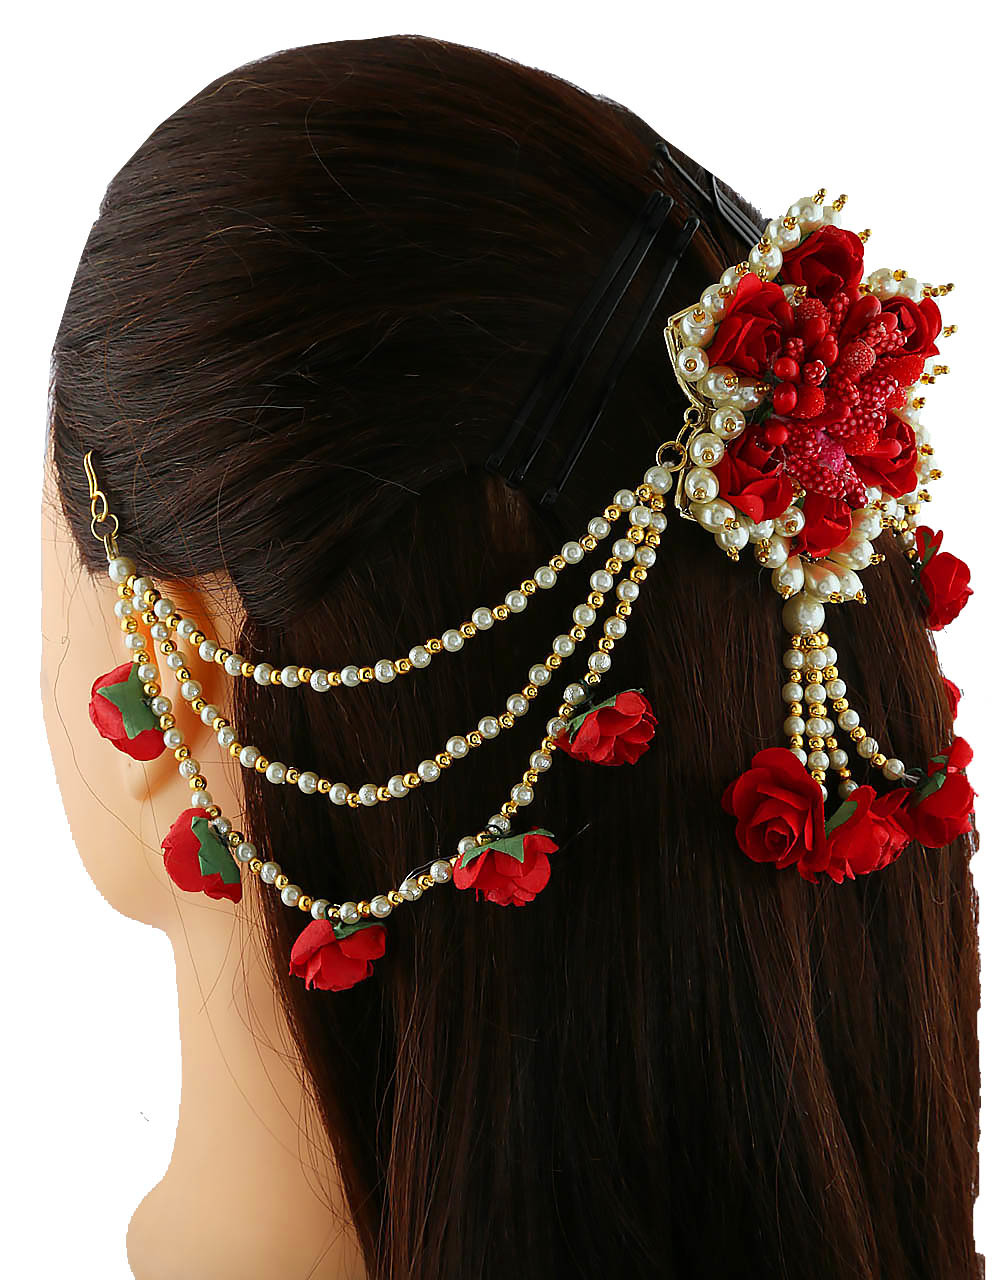 Red Colour Moti Styled Fancy Hair Jewellery Styled With Pearls Hair Brooch